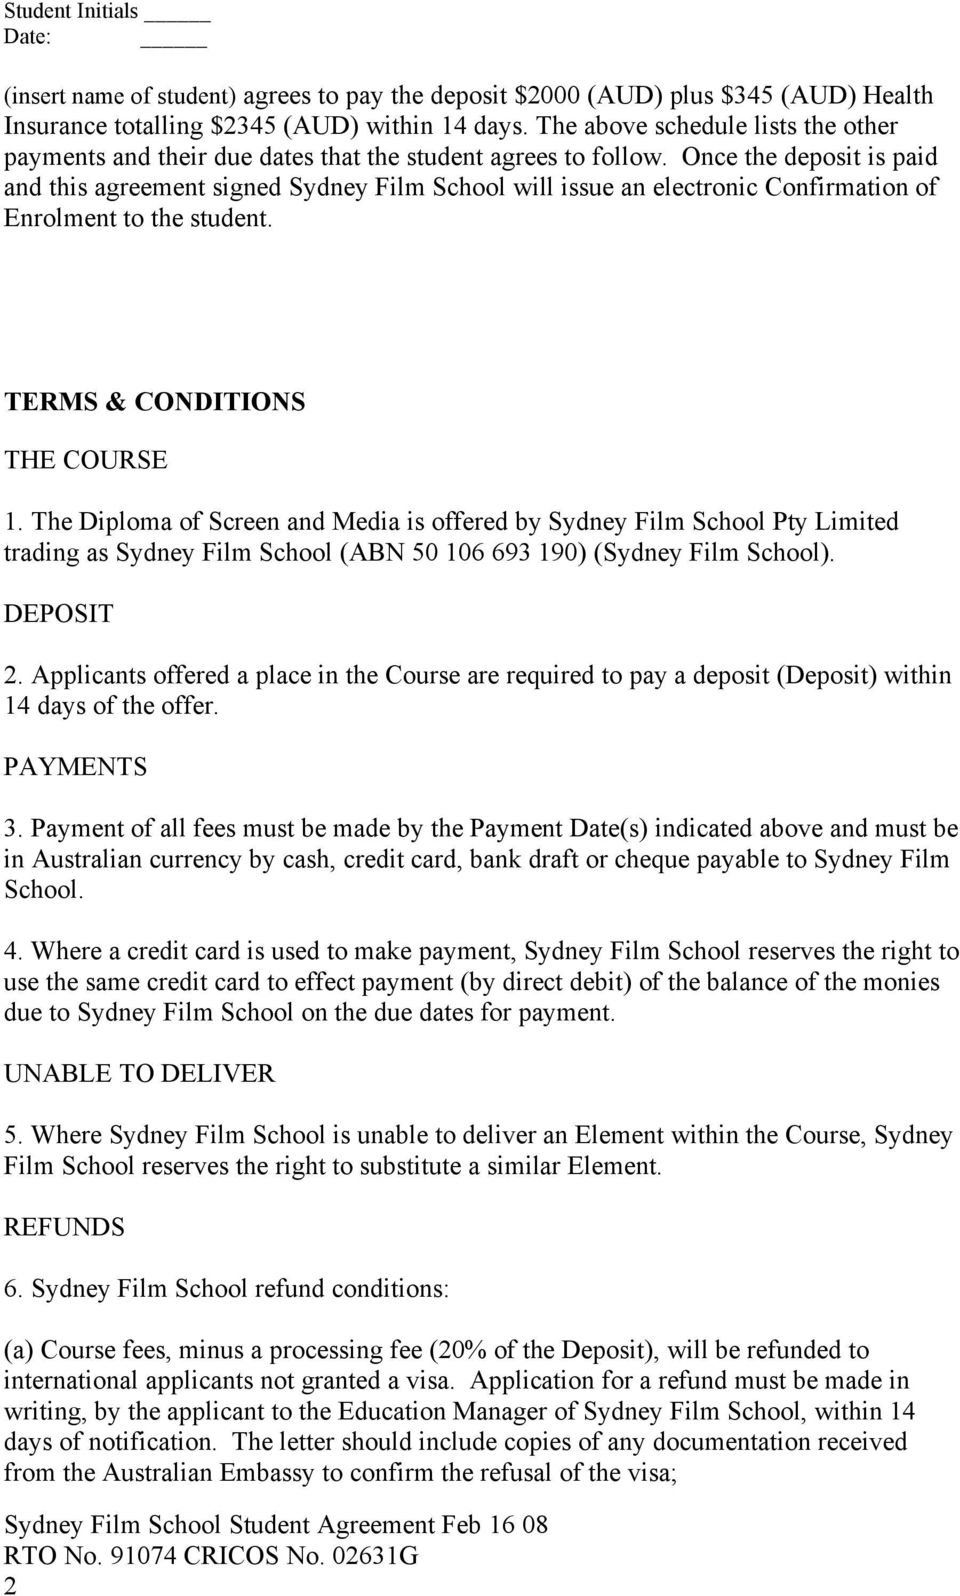 Once the deposit is paid and this agreement signed Sydney Film School will issue an electronic Confirmation of Enrolment to the student. TERMS & CONDITIONS THE COURSE 1.